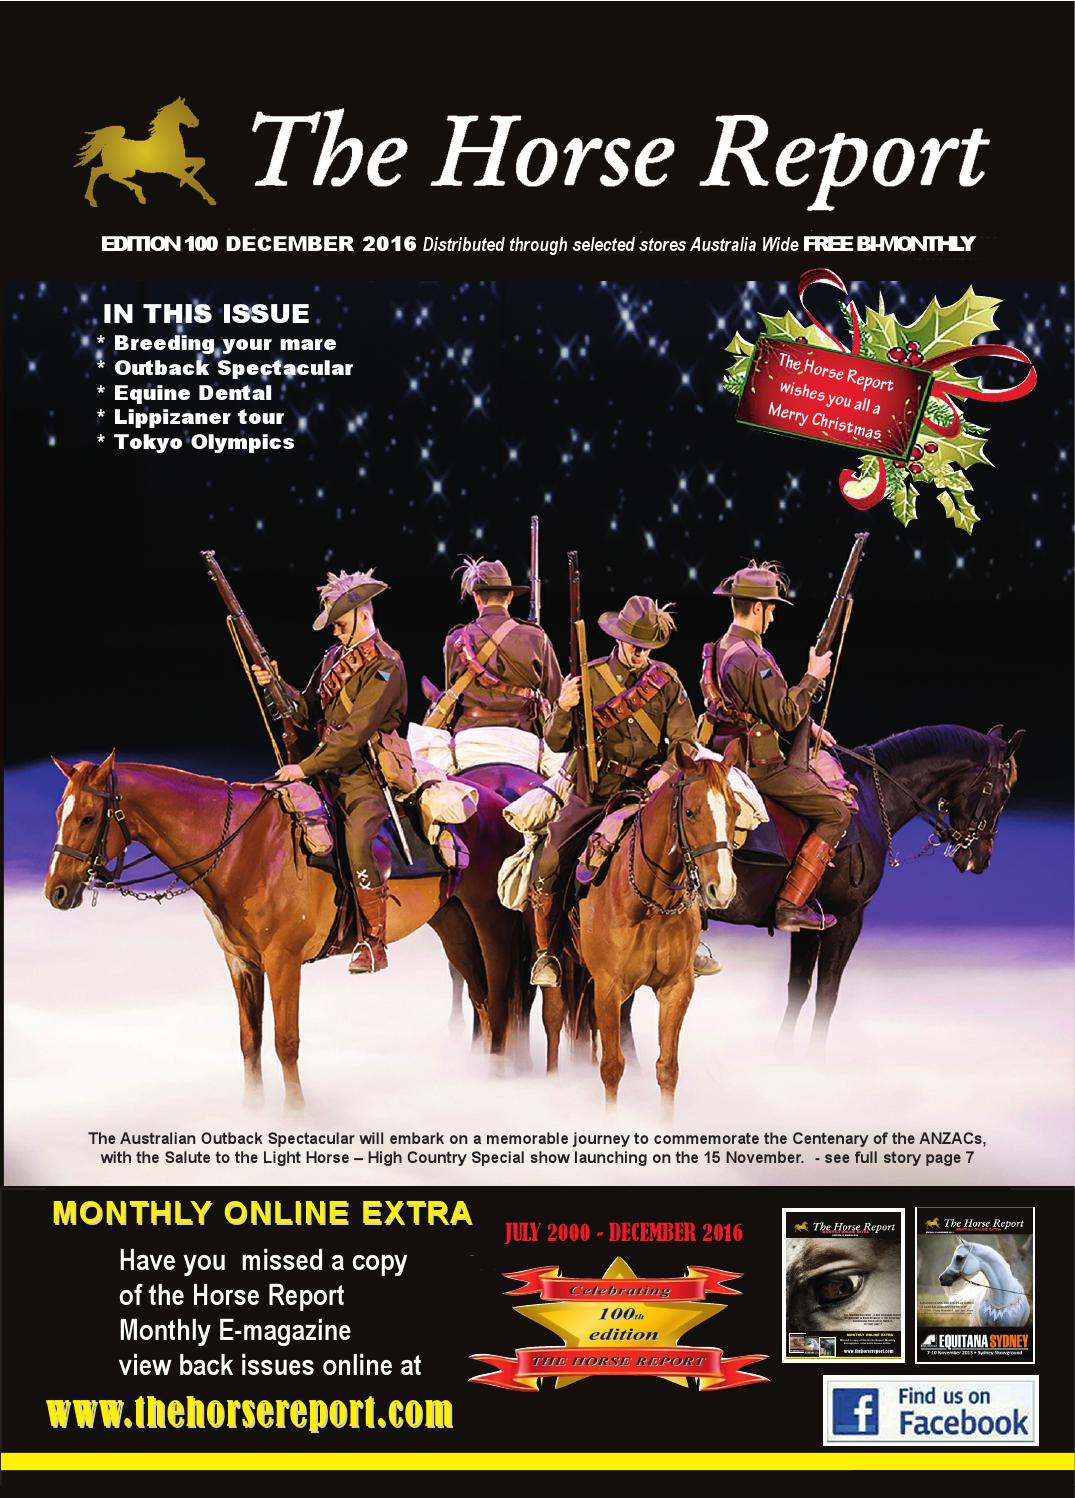 Horse report december 2106 by the horse report - issuu